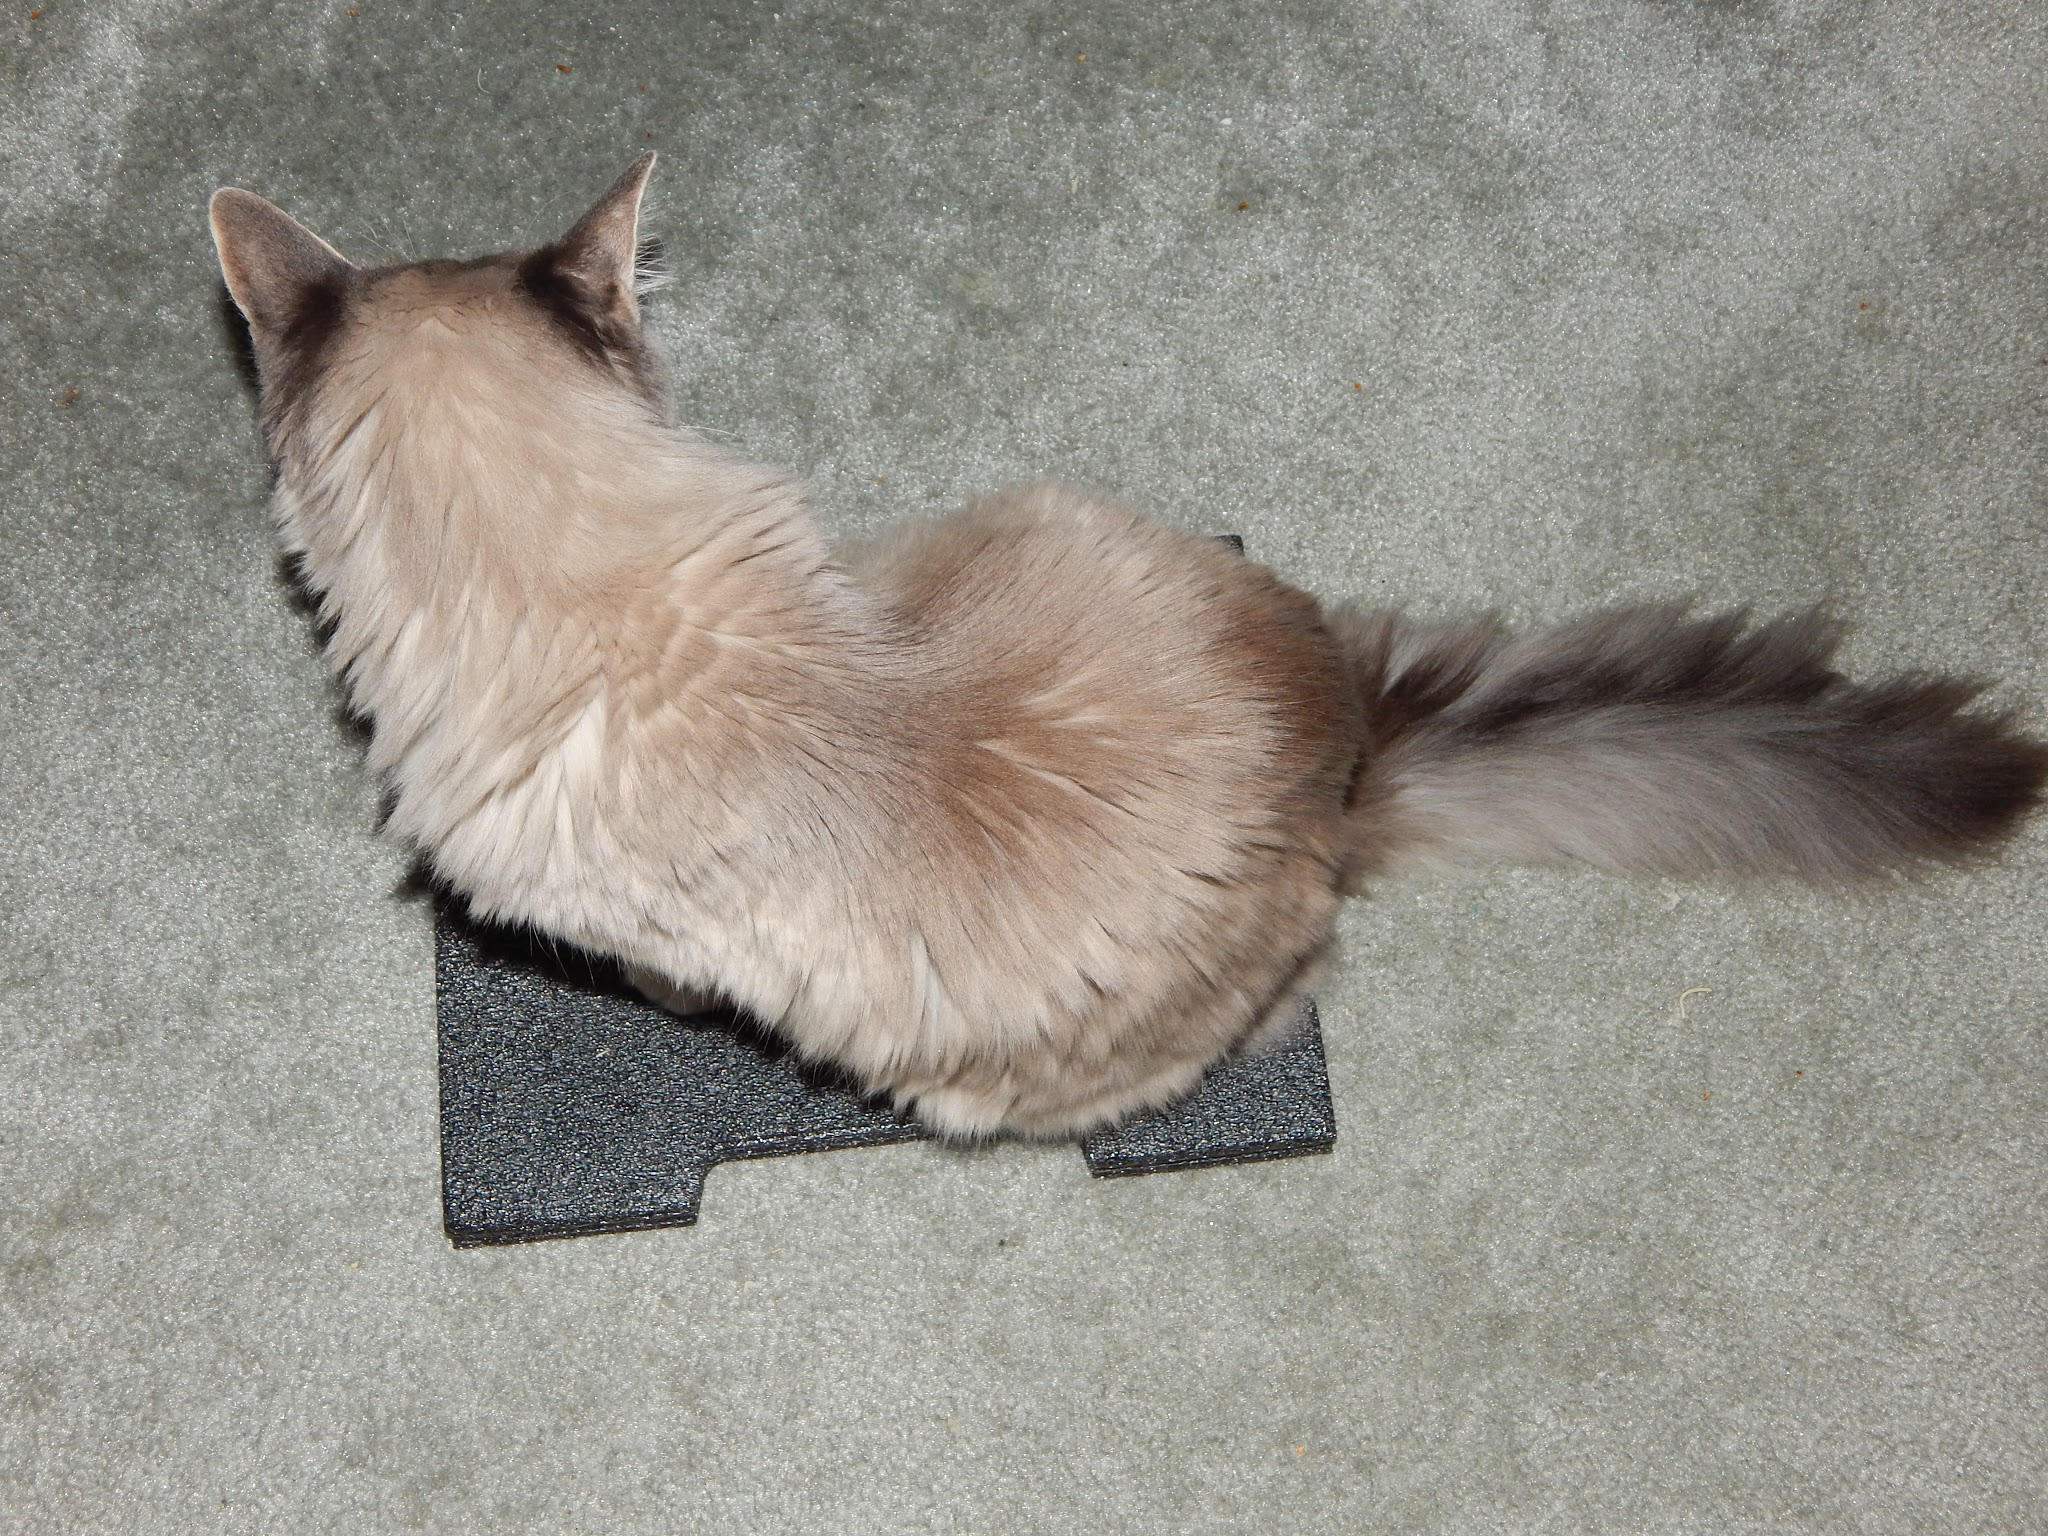 Cat scratching carpet after eating